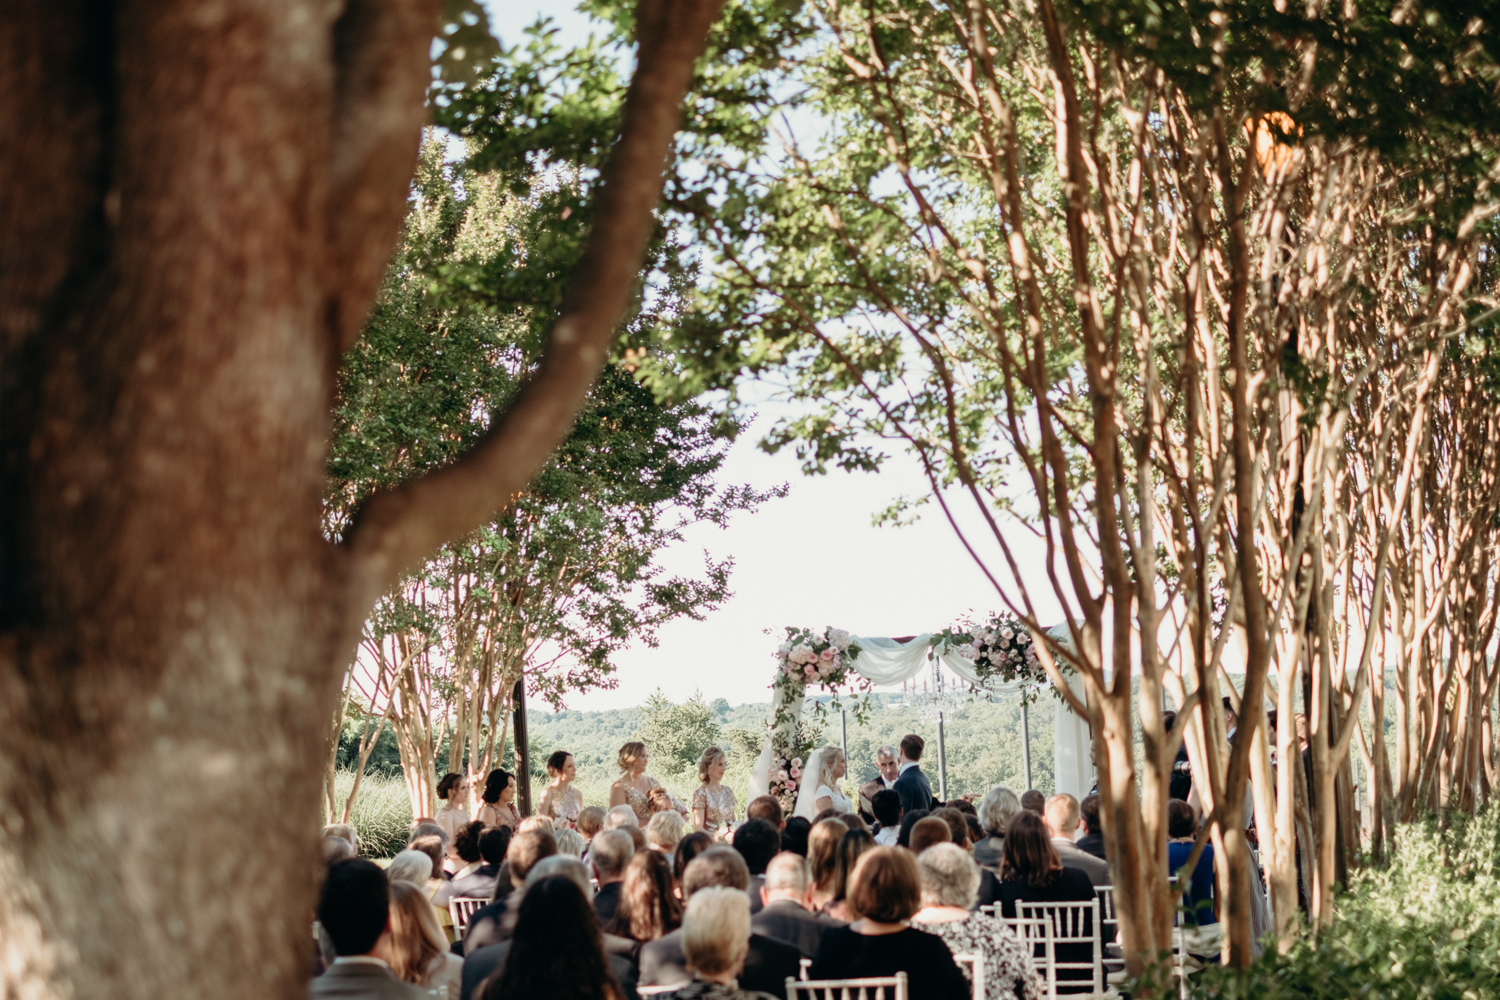 A wedding ceremony is celebrated on the tree-lined patio at Lansdowne Resort.